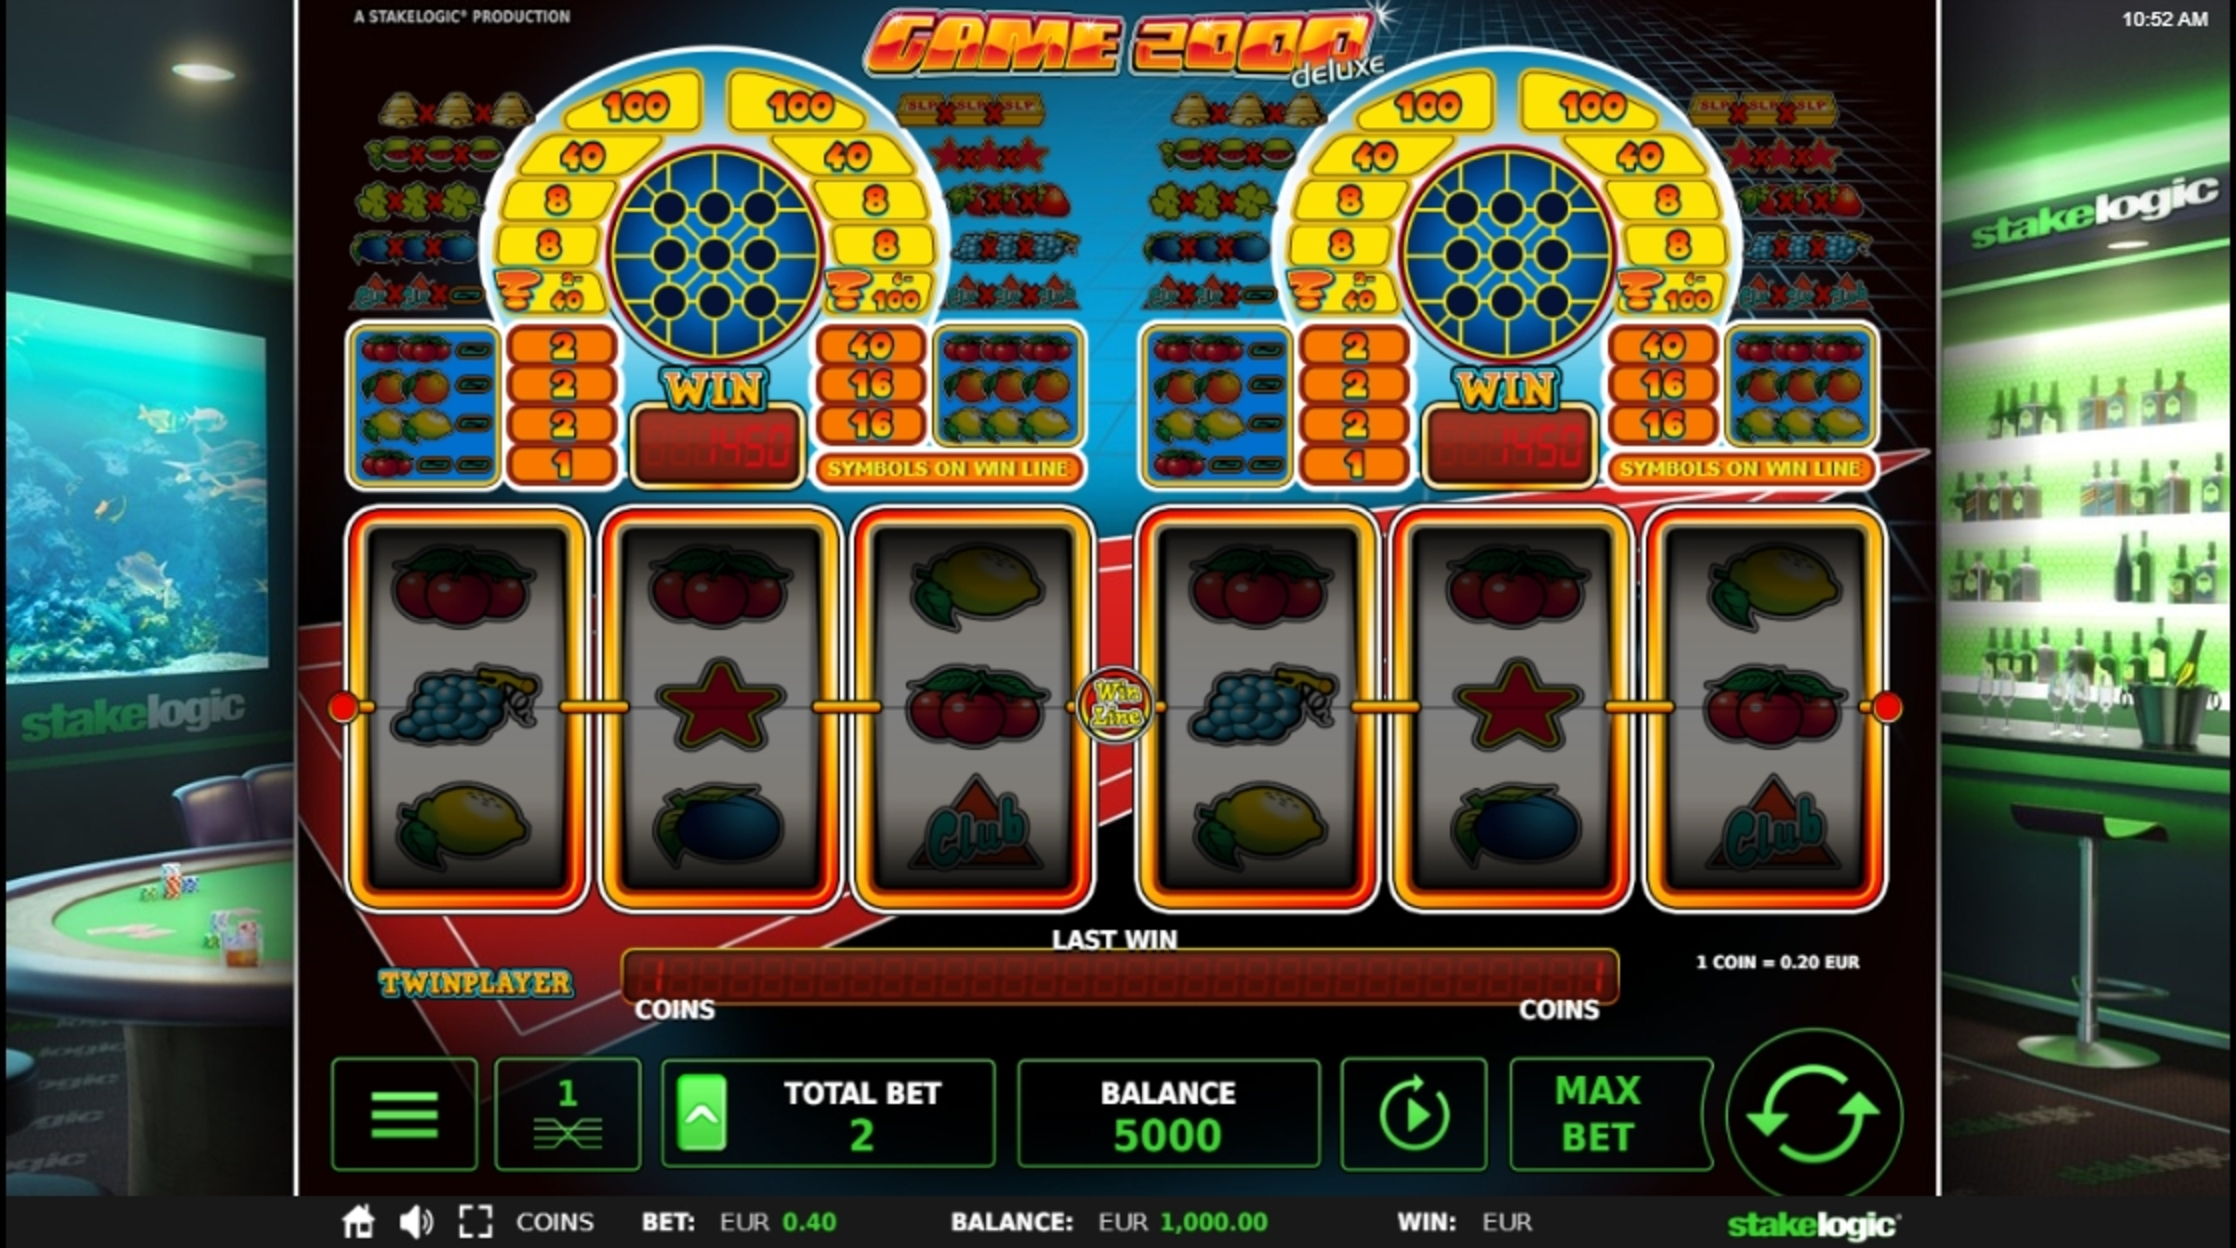 Reels in Game 2000 Slot Game by StakeLogic